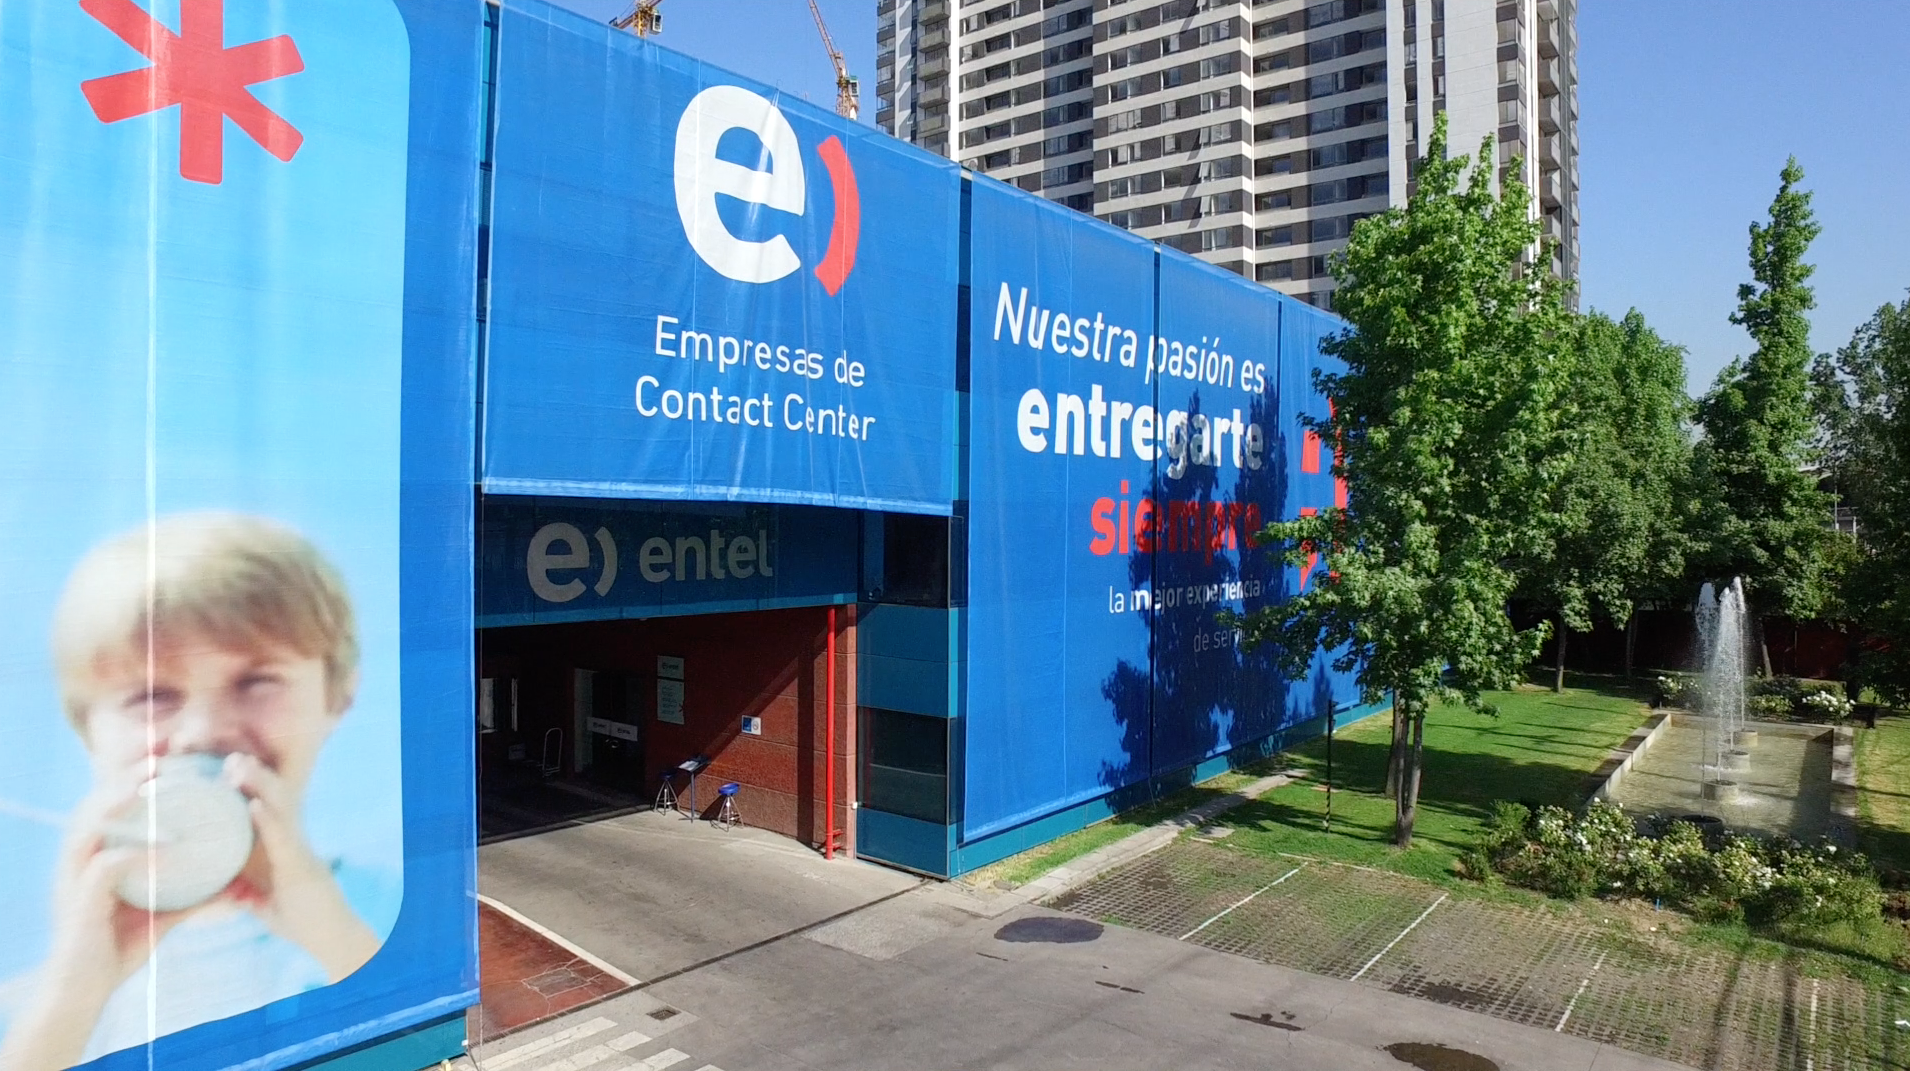 Entel empresas Contact Center (Video)